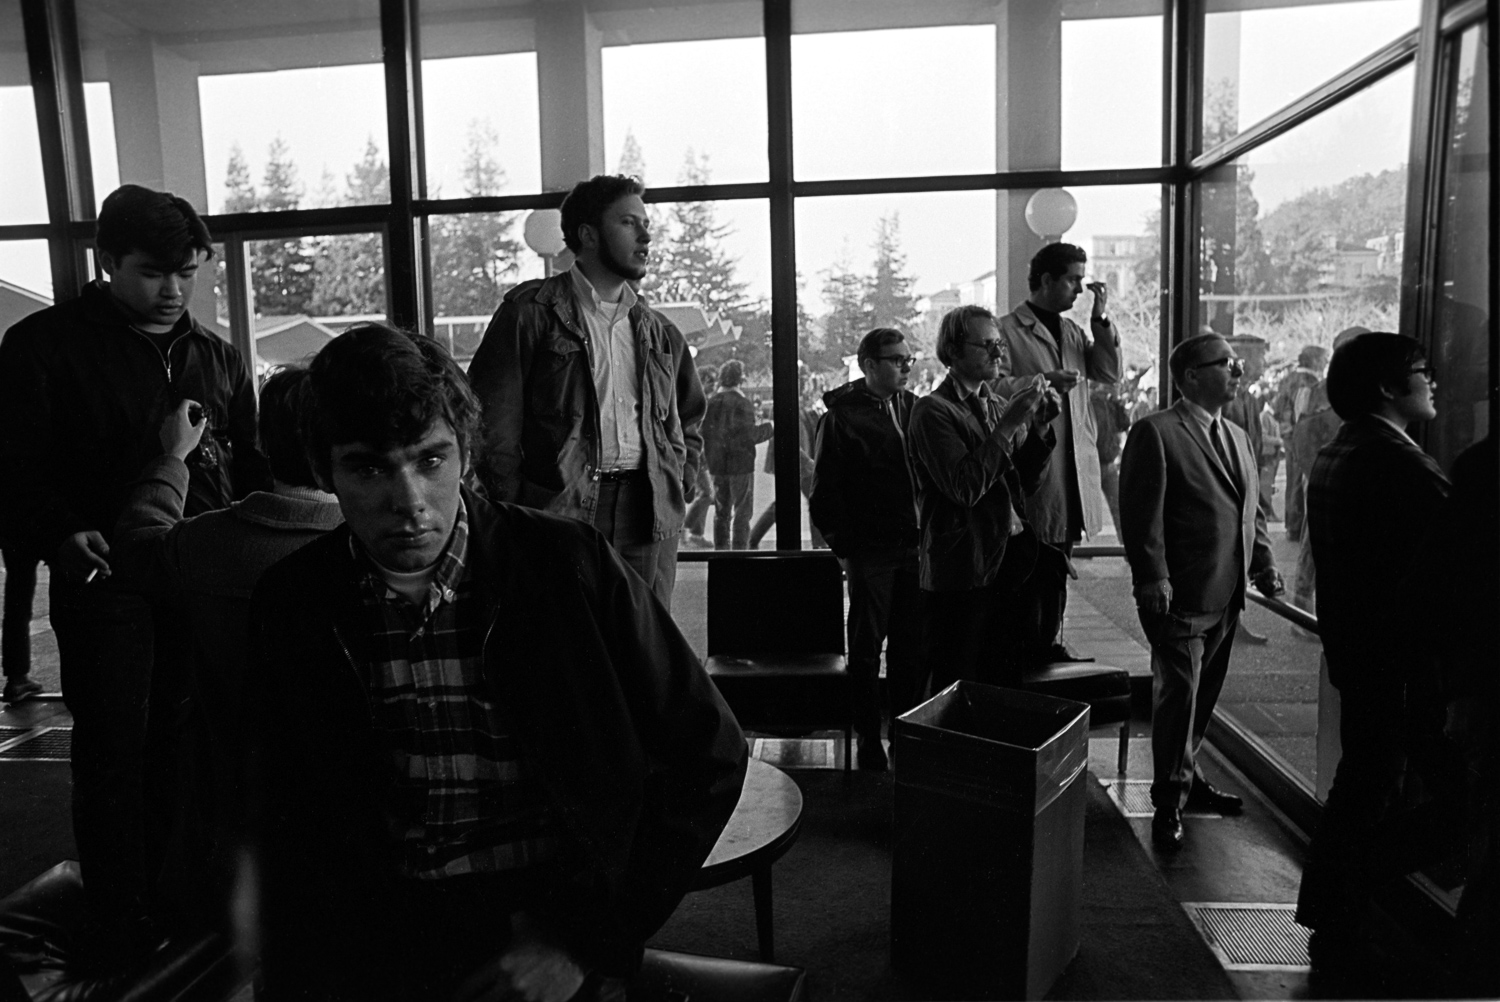 Some Berkeley students preferred the view from inside the glassed buildings where the campus bordered Telegraph Avenue.